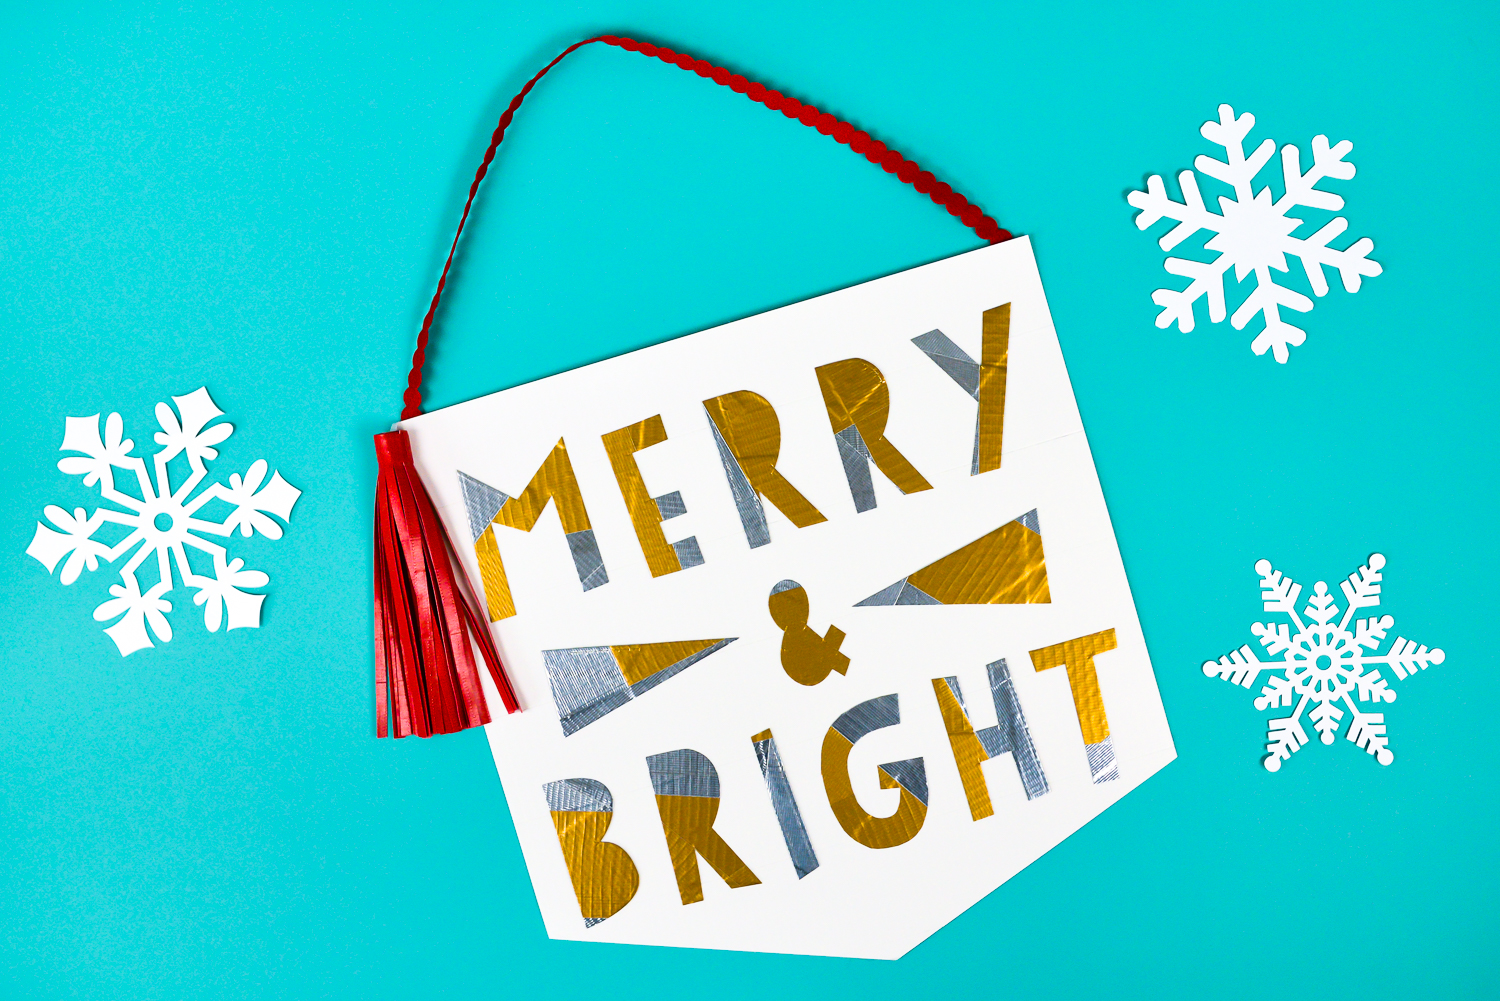 Get creative withDuck Tape® to make this cute patchwork-style DIY Christmas banner! Includes instructions for making the banner, letters, and tassel—all withDuck Tape!